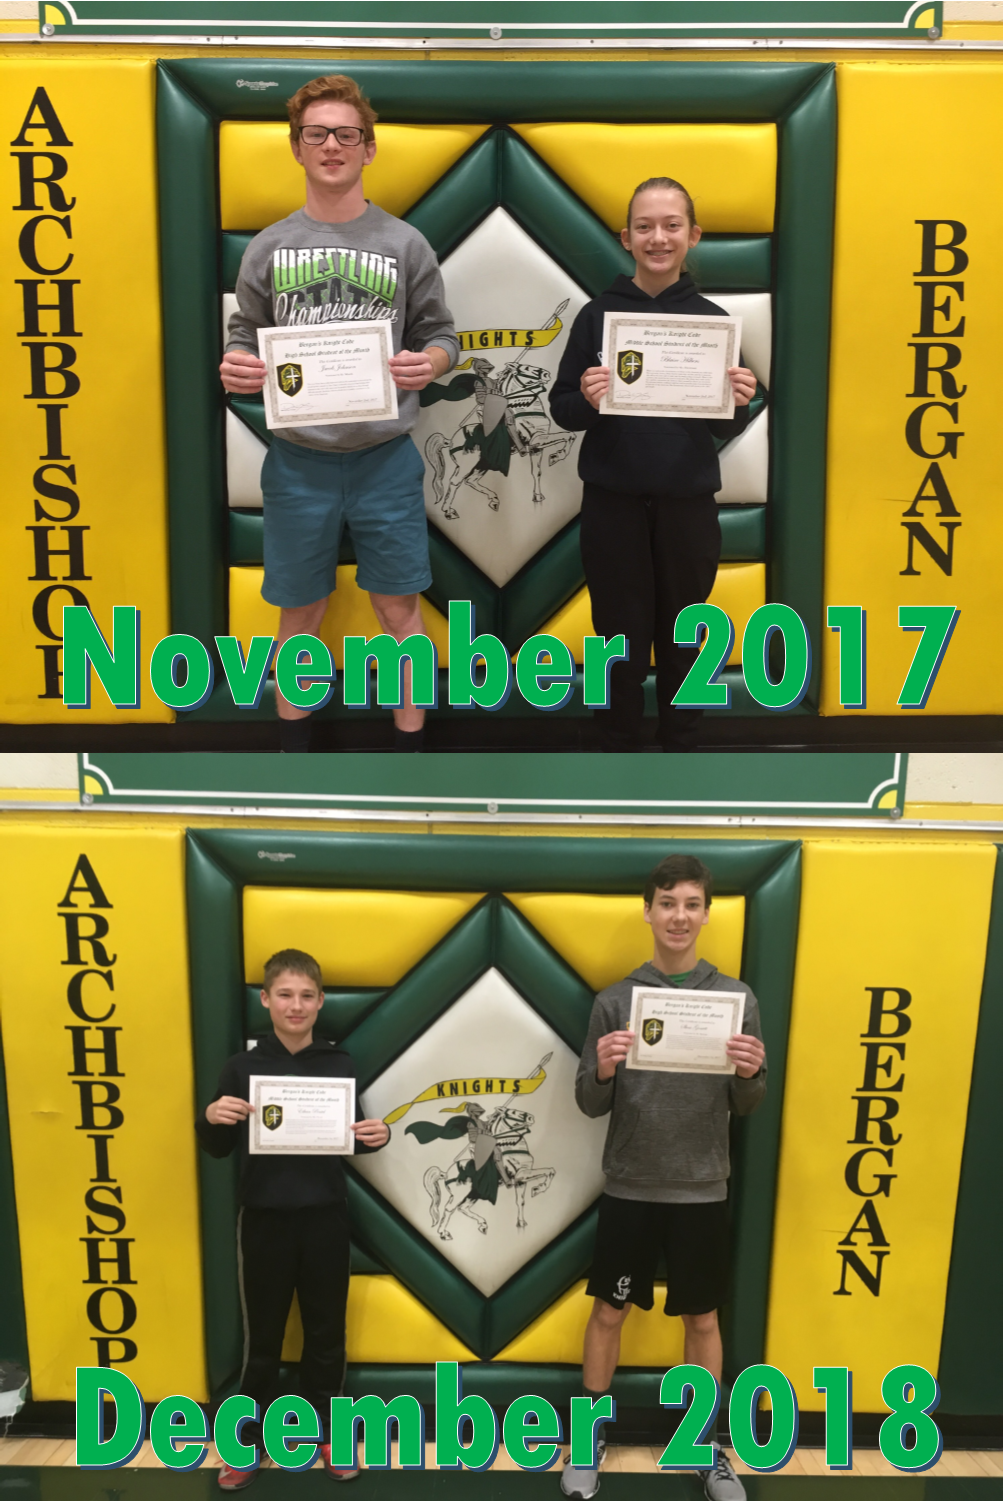 November & December - Knight's Code Students of the Month